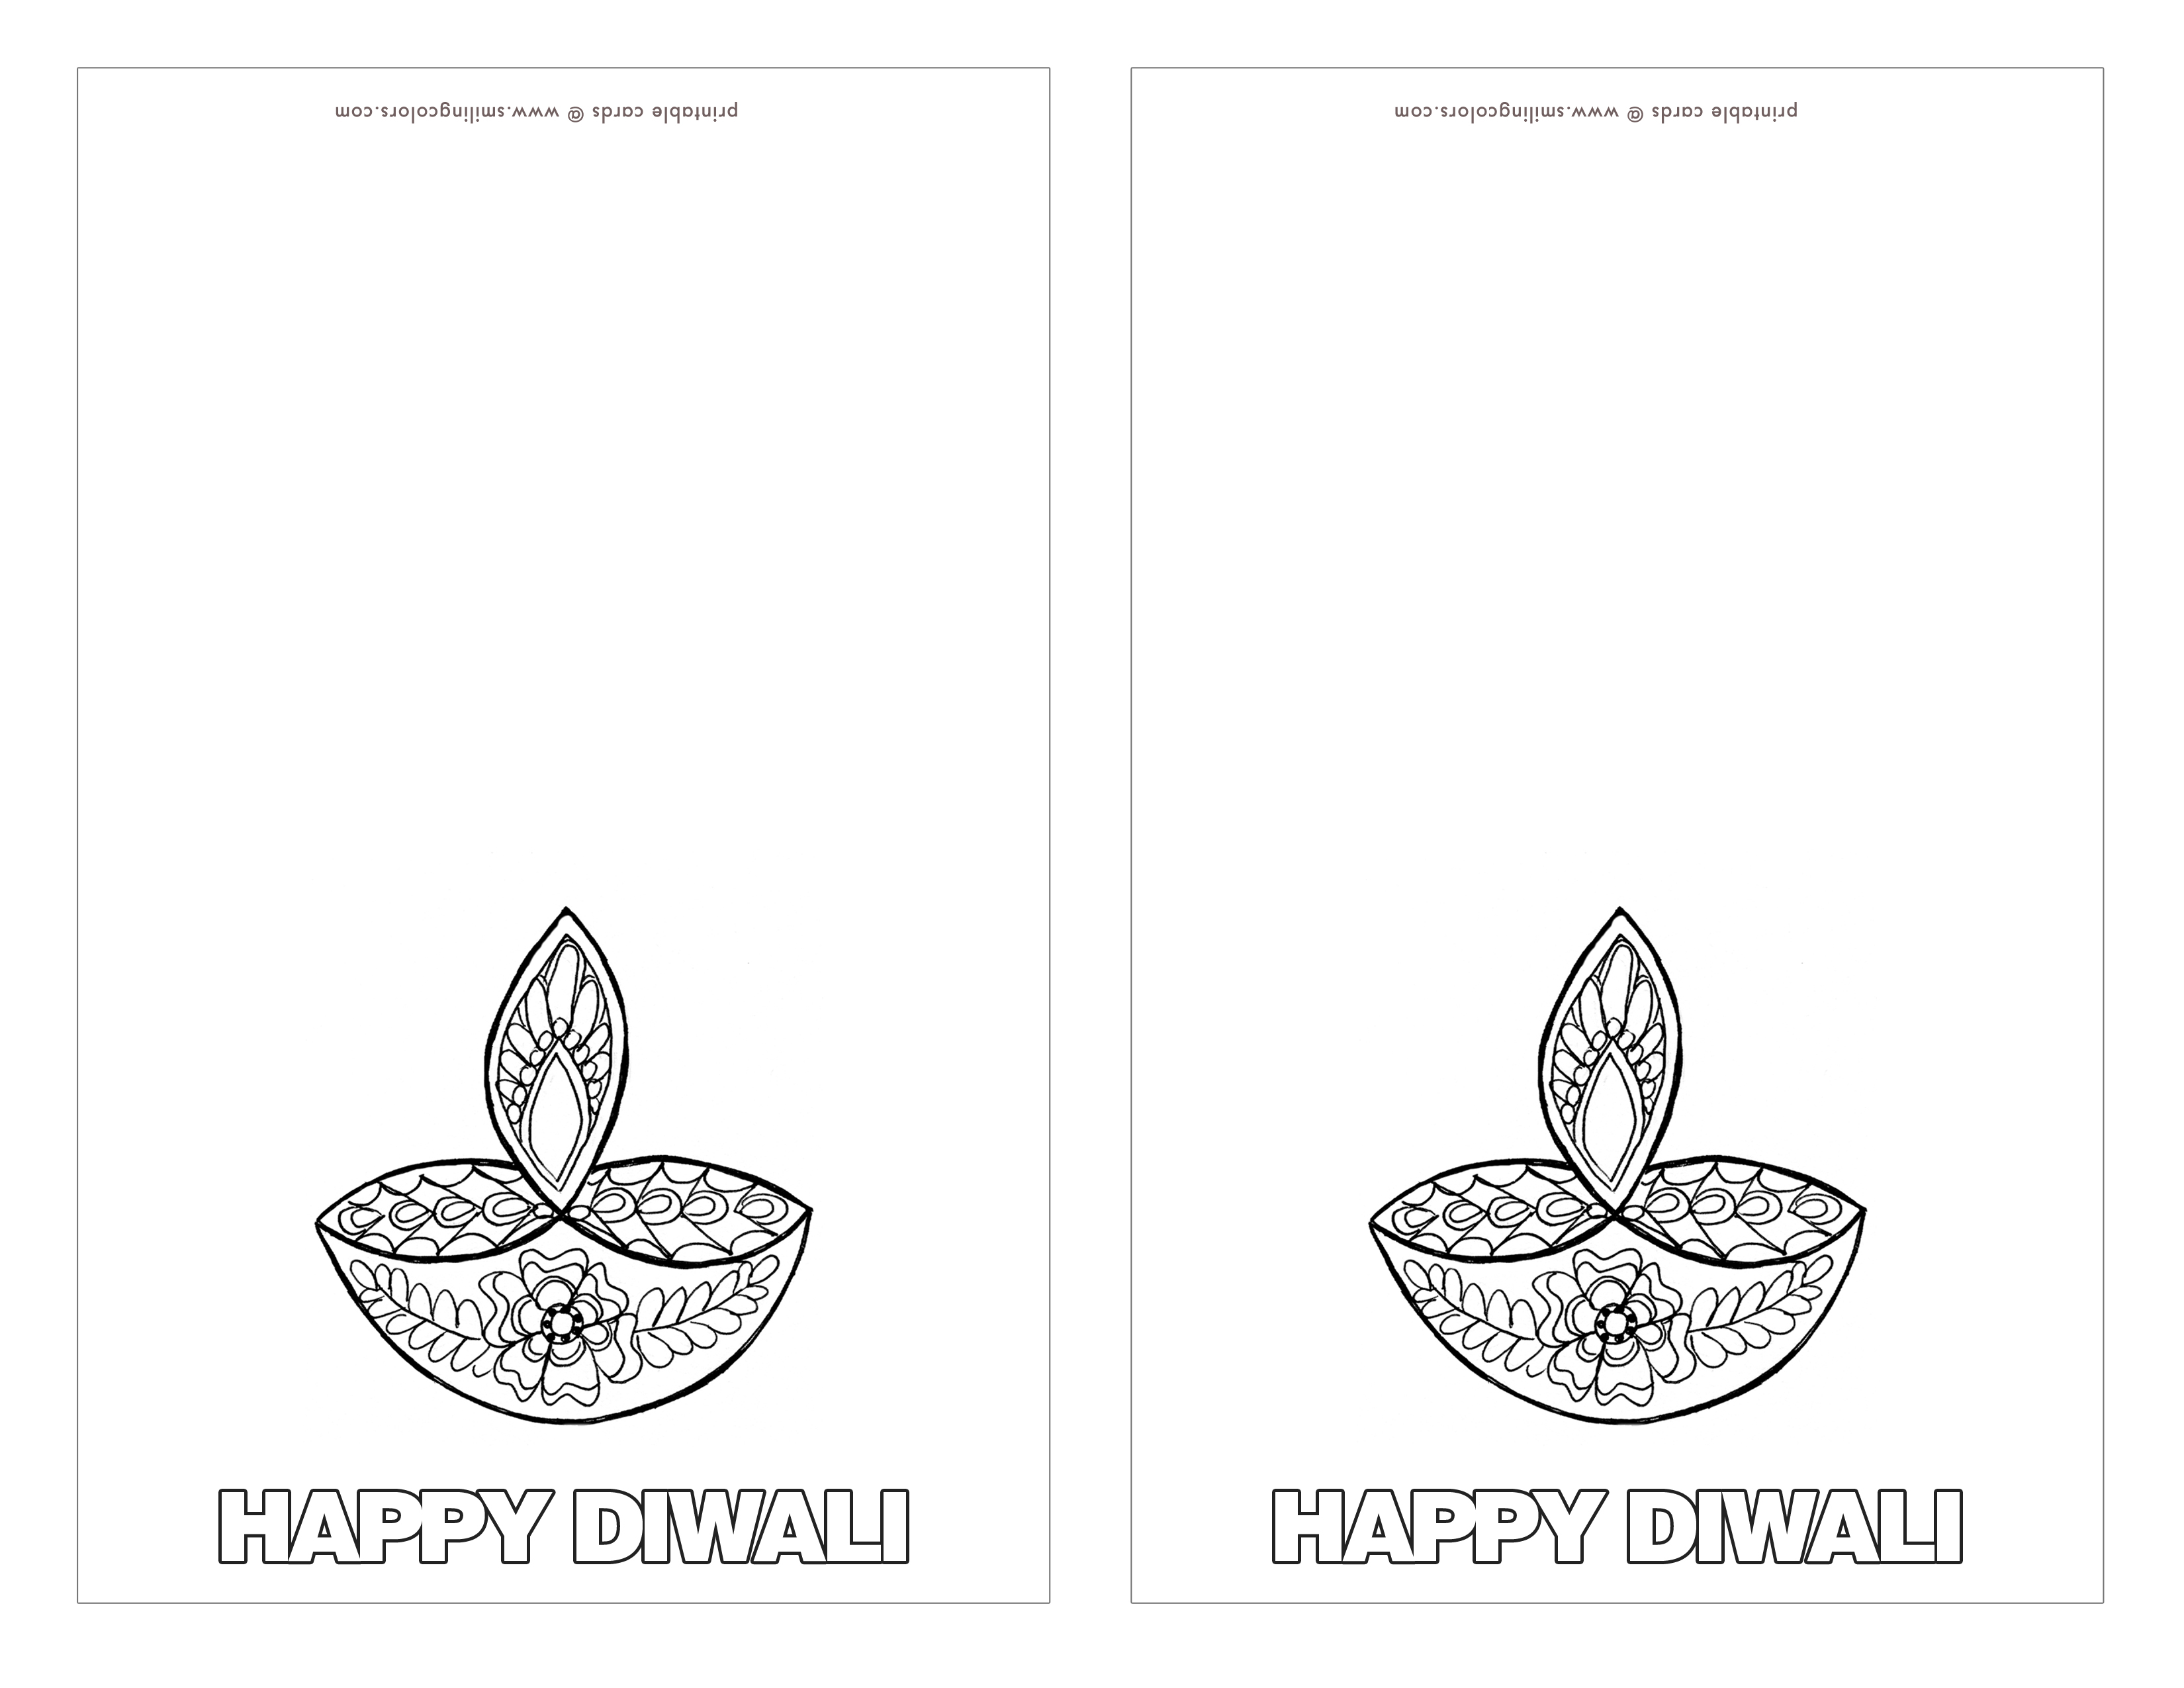 Color cards free - Trim The Cards And Color In The Images Or Have Your Kids Color Them And Have Fun Free_printable_diwali_card_smiling_colors